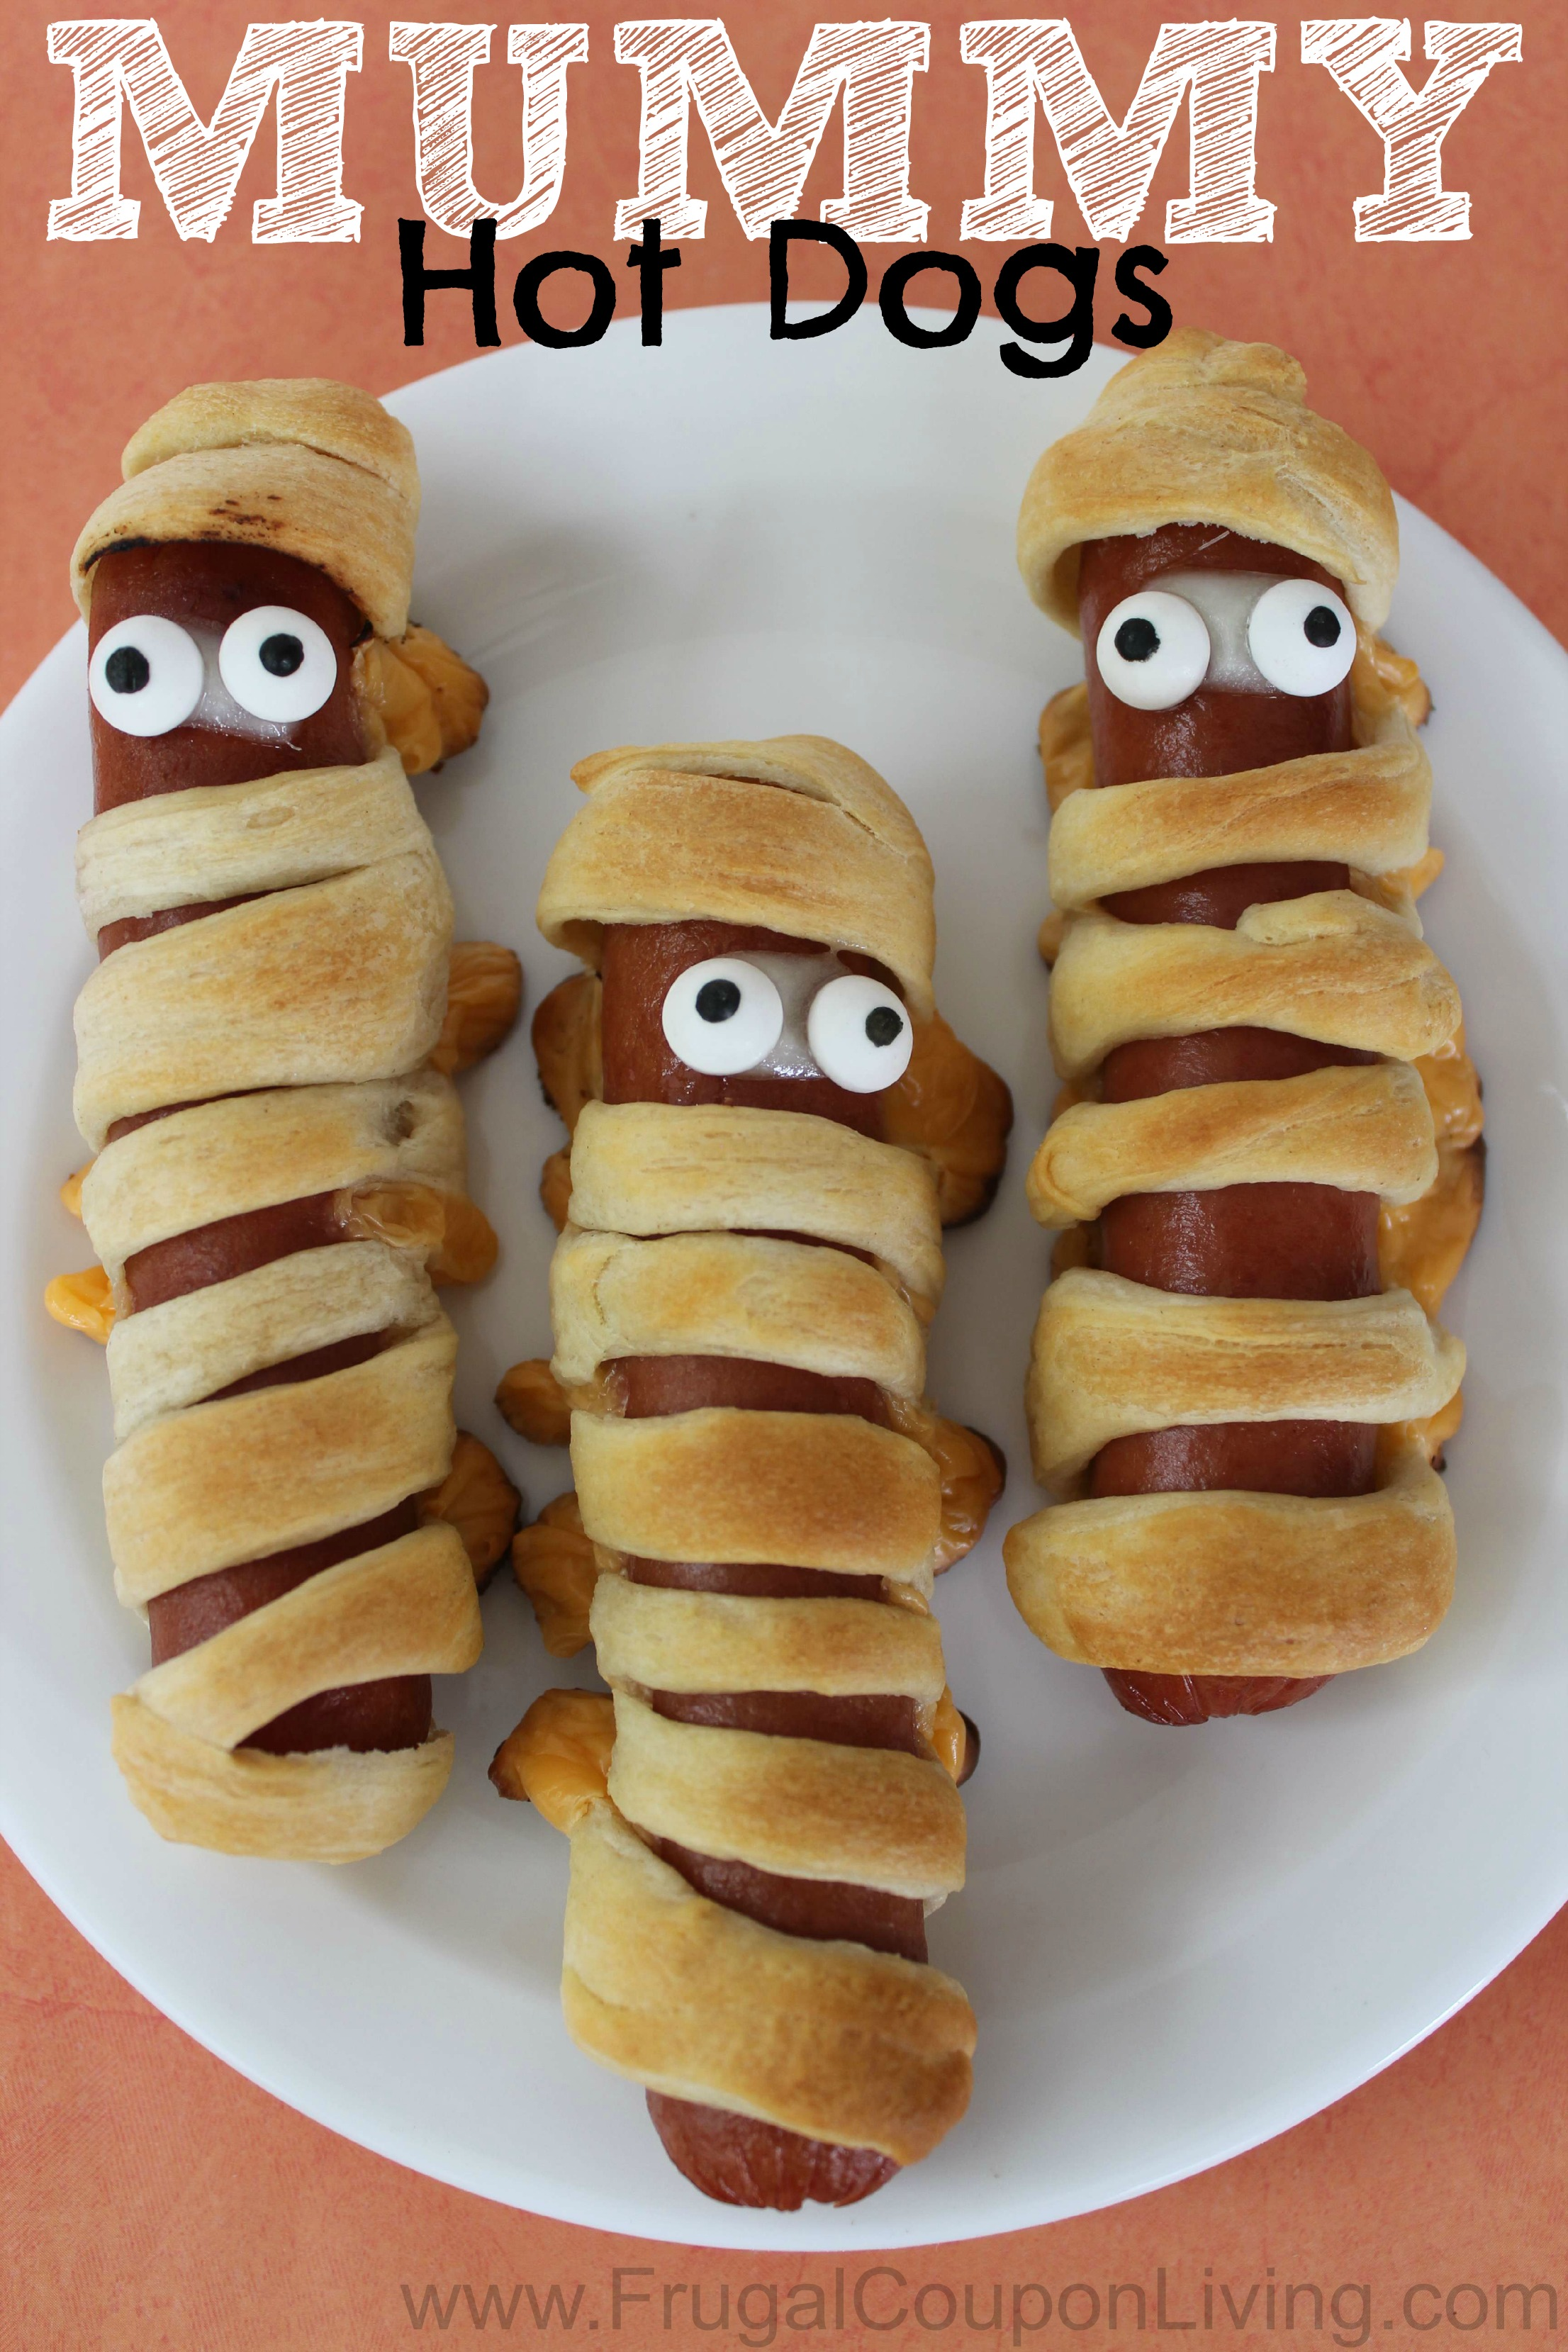 Halloween Mummy Hot Dogs using Crescent Rolls - these make a yummy Halloween Dinner. #mummyhotdogs #mummy #hotdogs #hotdogrecipe #halloween #halloweenrecipes #FrugalCouponLiving